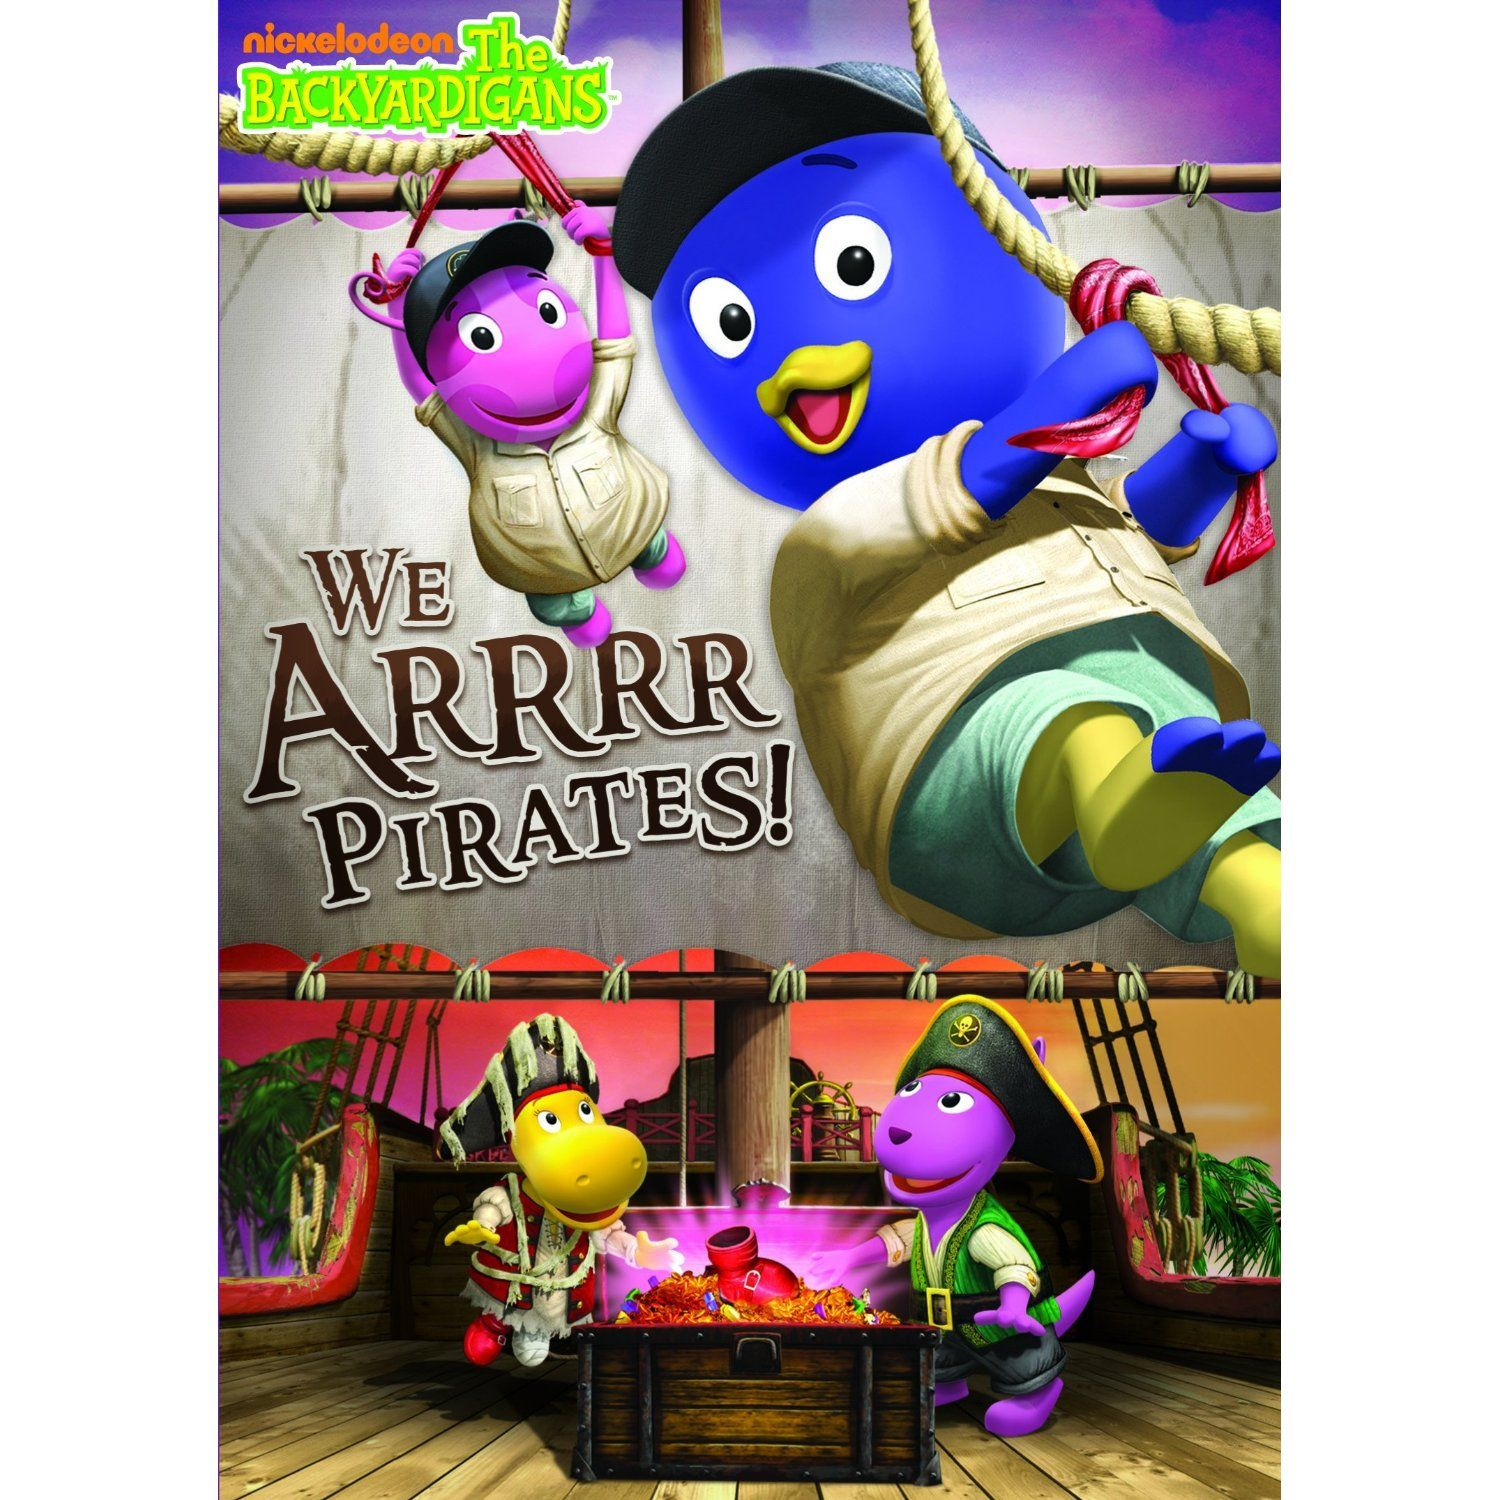 Backyardigans We Arrrr Pirates Is Available At Maplewood Community Library Dvd Pirate Adventure Pirates Kids